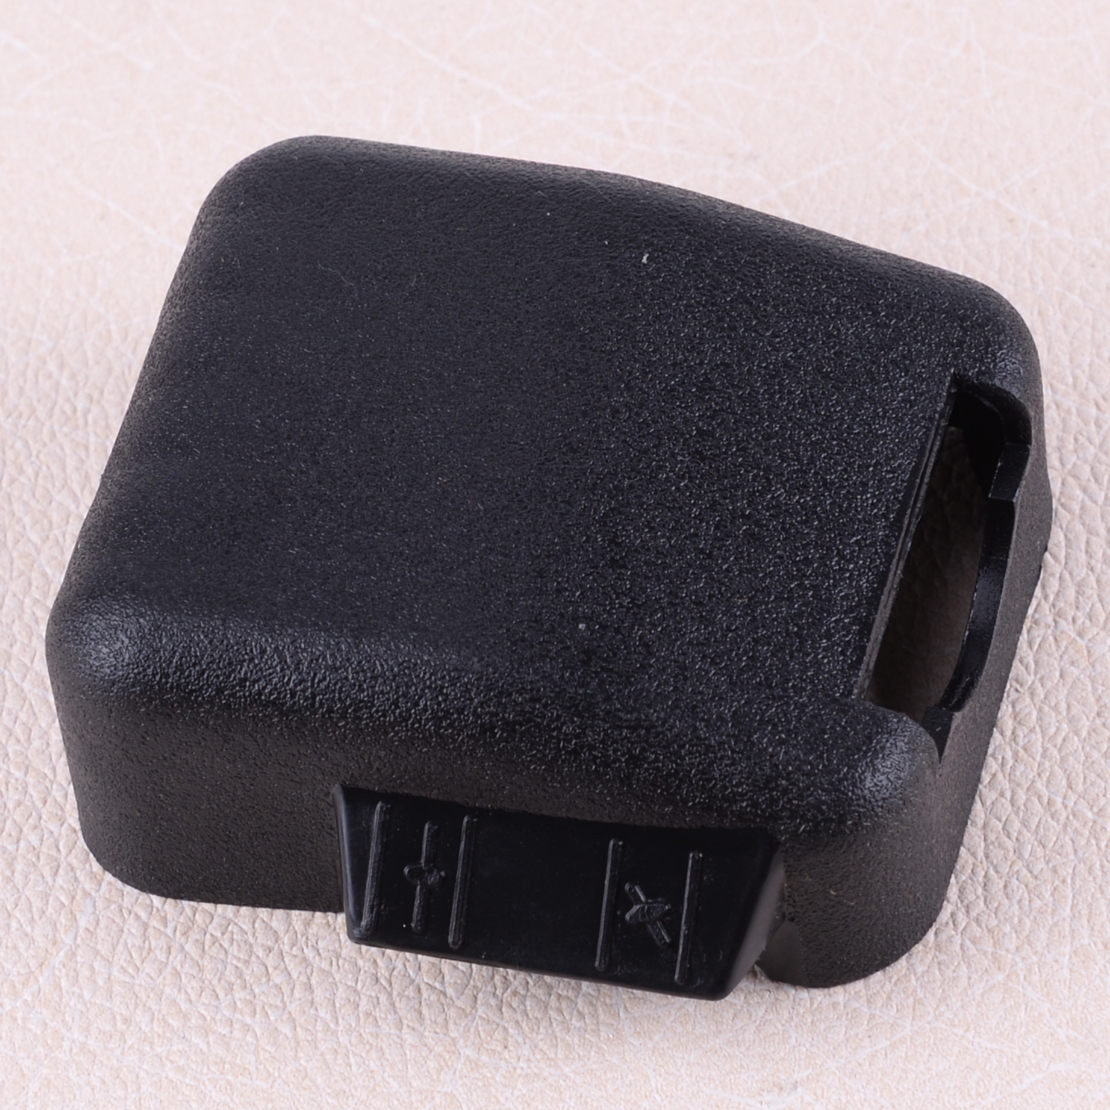 Black Air Filter Cleaner Cover Fit For Stihl KM85 FS85 FS80 FC85 FC75 BG75 4137 141 0500